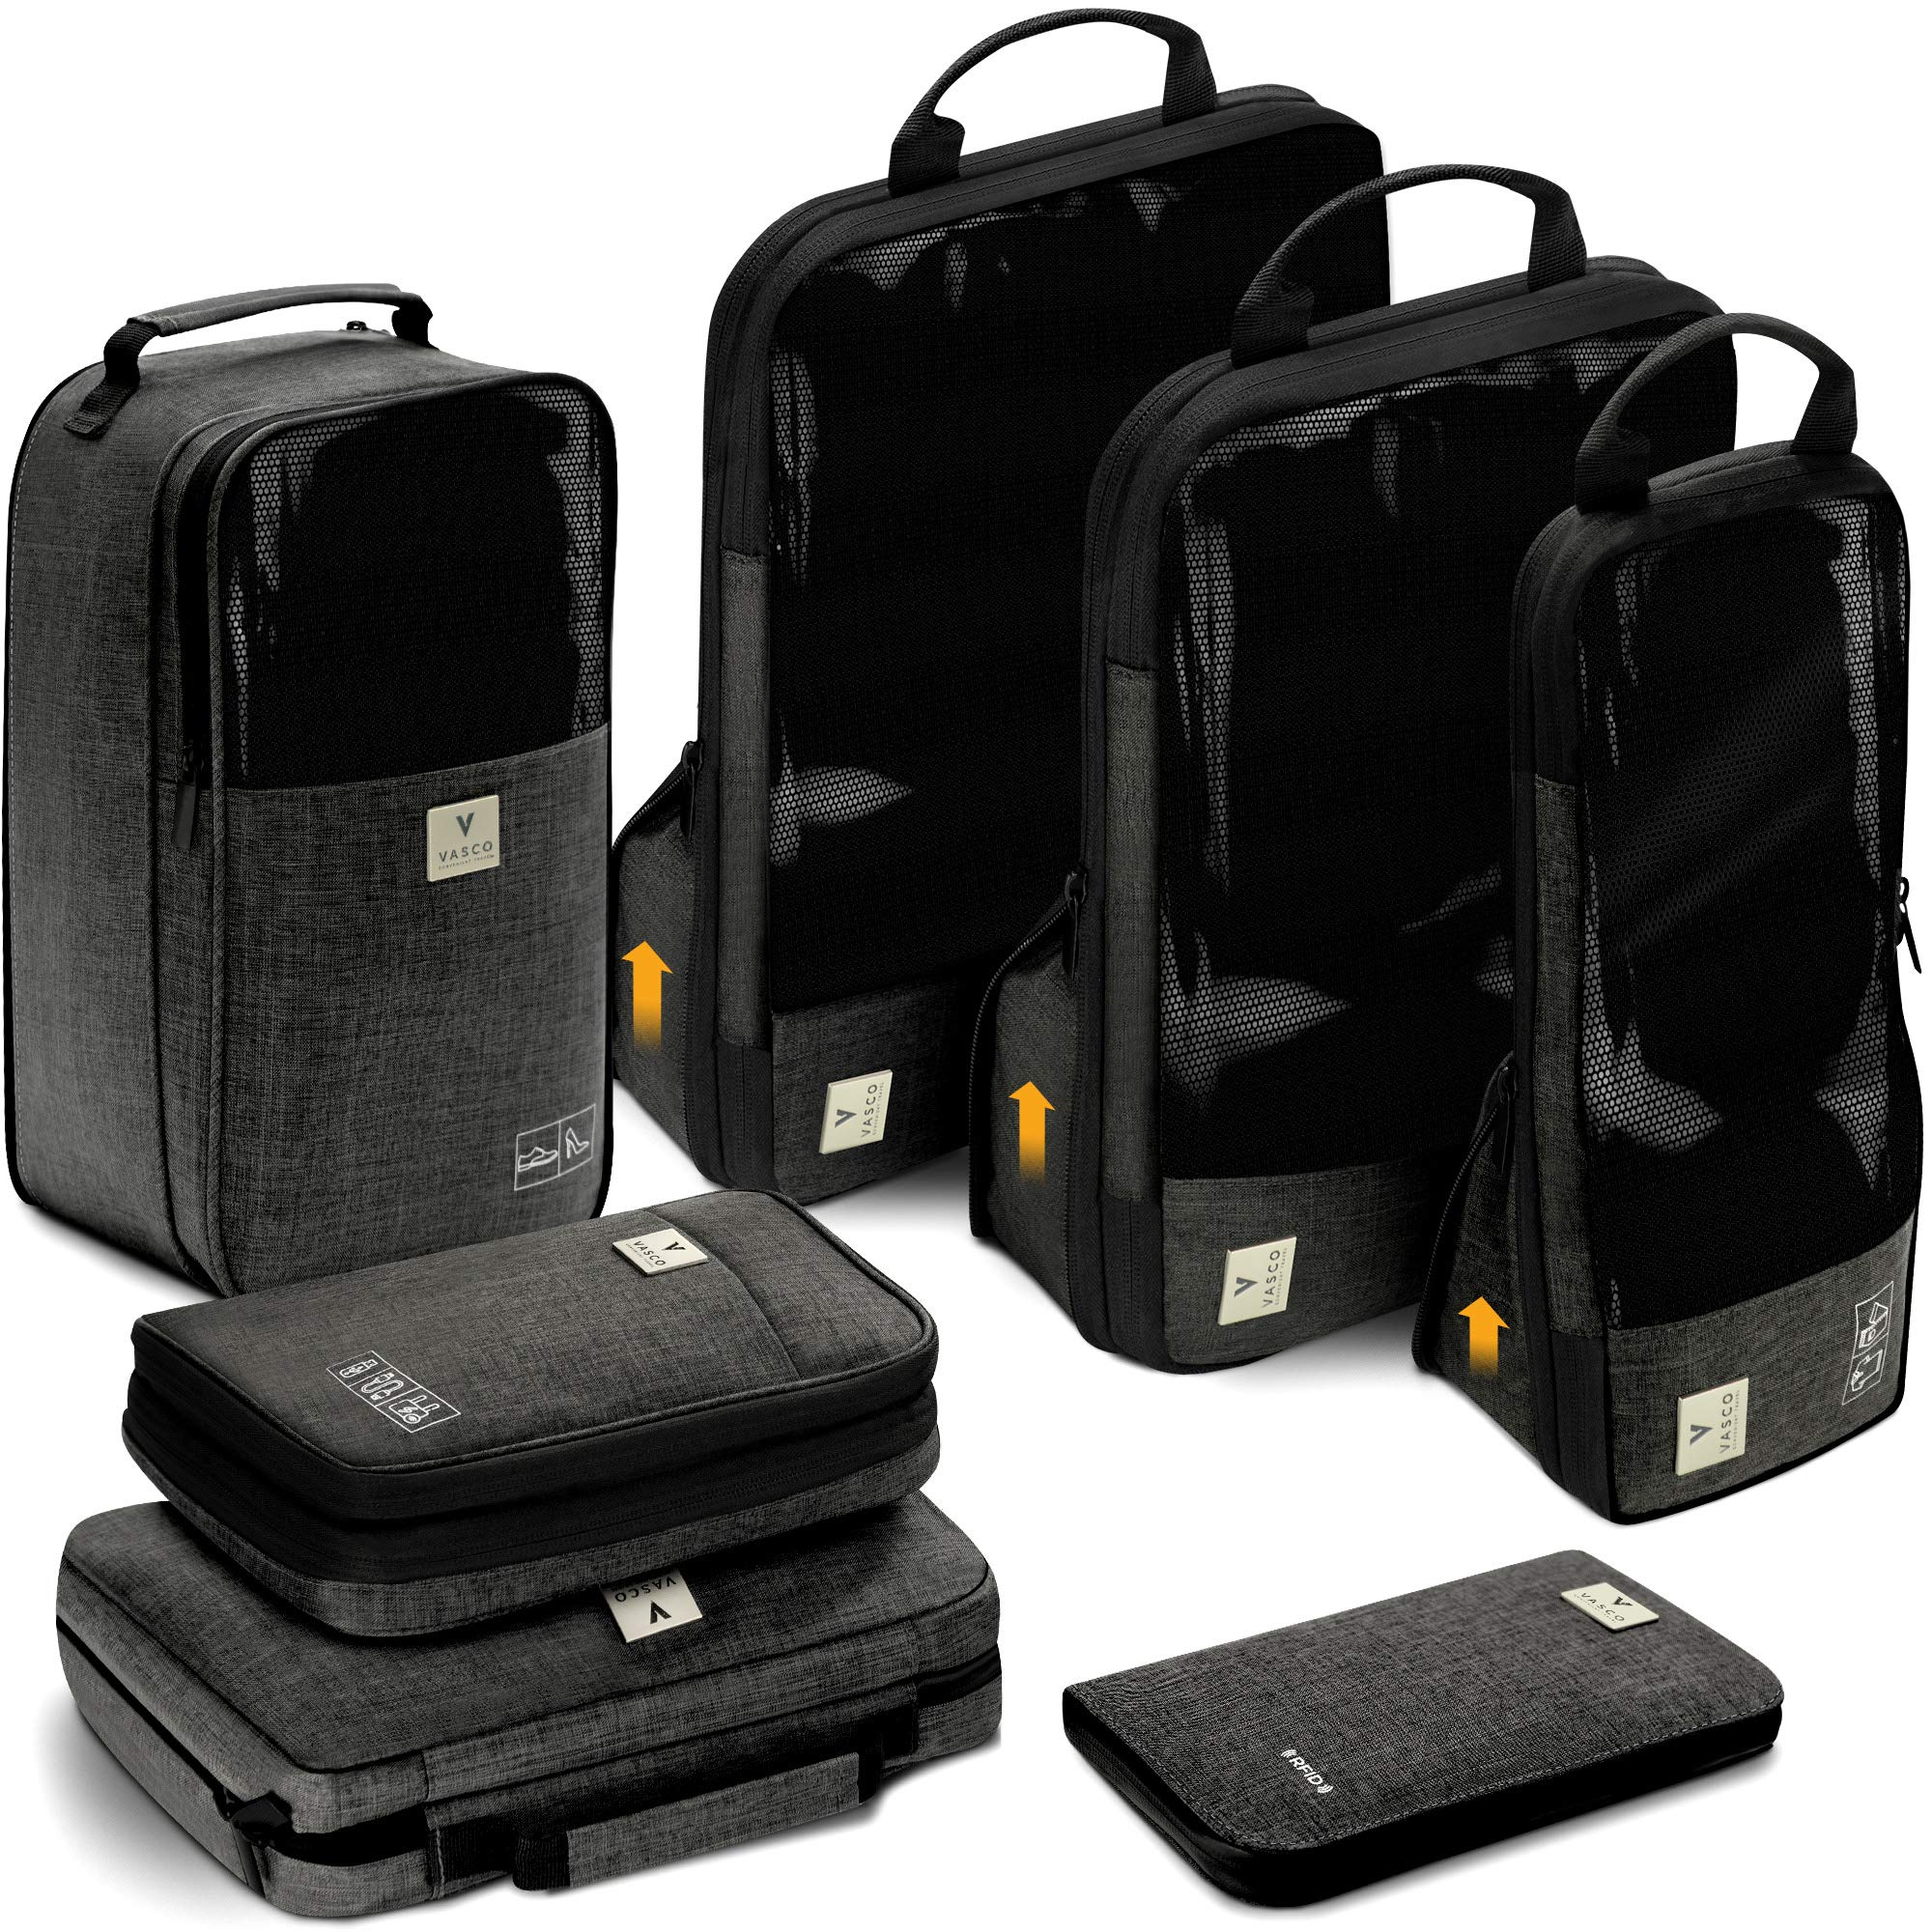 VASCO Travel Packing Cubes Set: Waterproof Travel Packing Organizer Set Of 3 Compression Cubes + Travel Shoes Bag + Hanging Toiletry Bag + Electronics Cube + Travel RFID Wallet  Top Travel Gear Kit